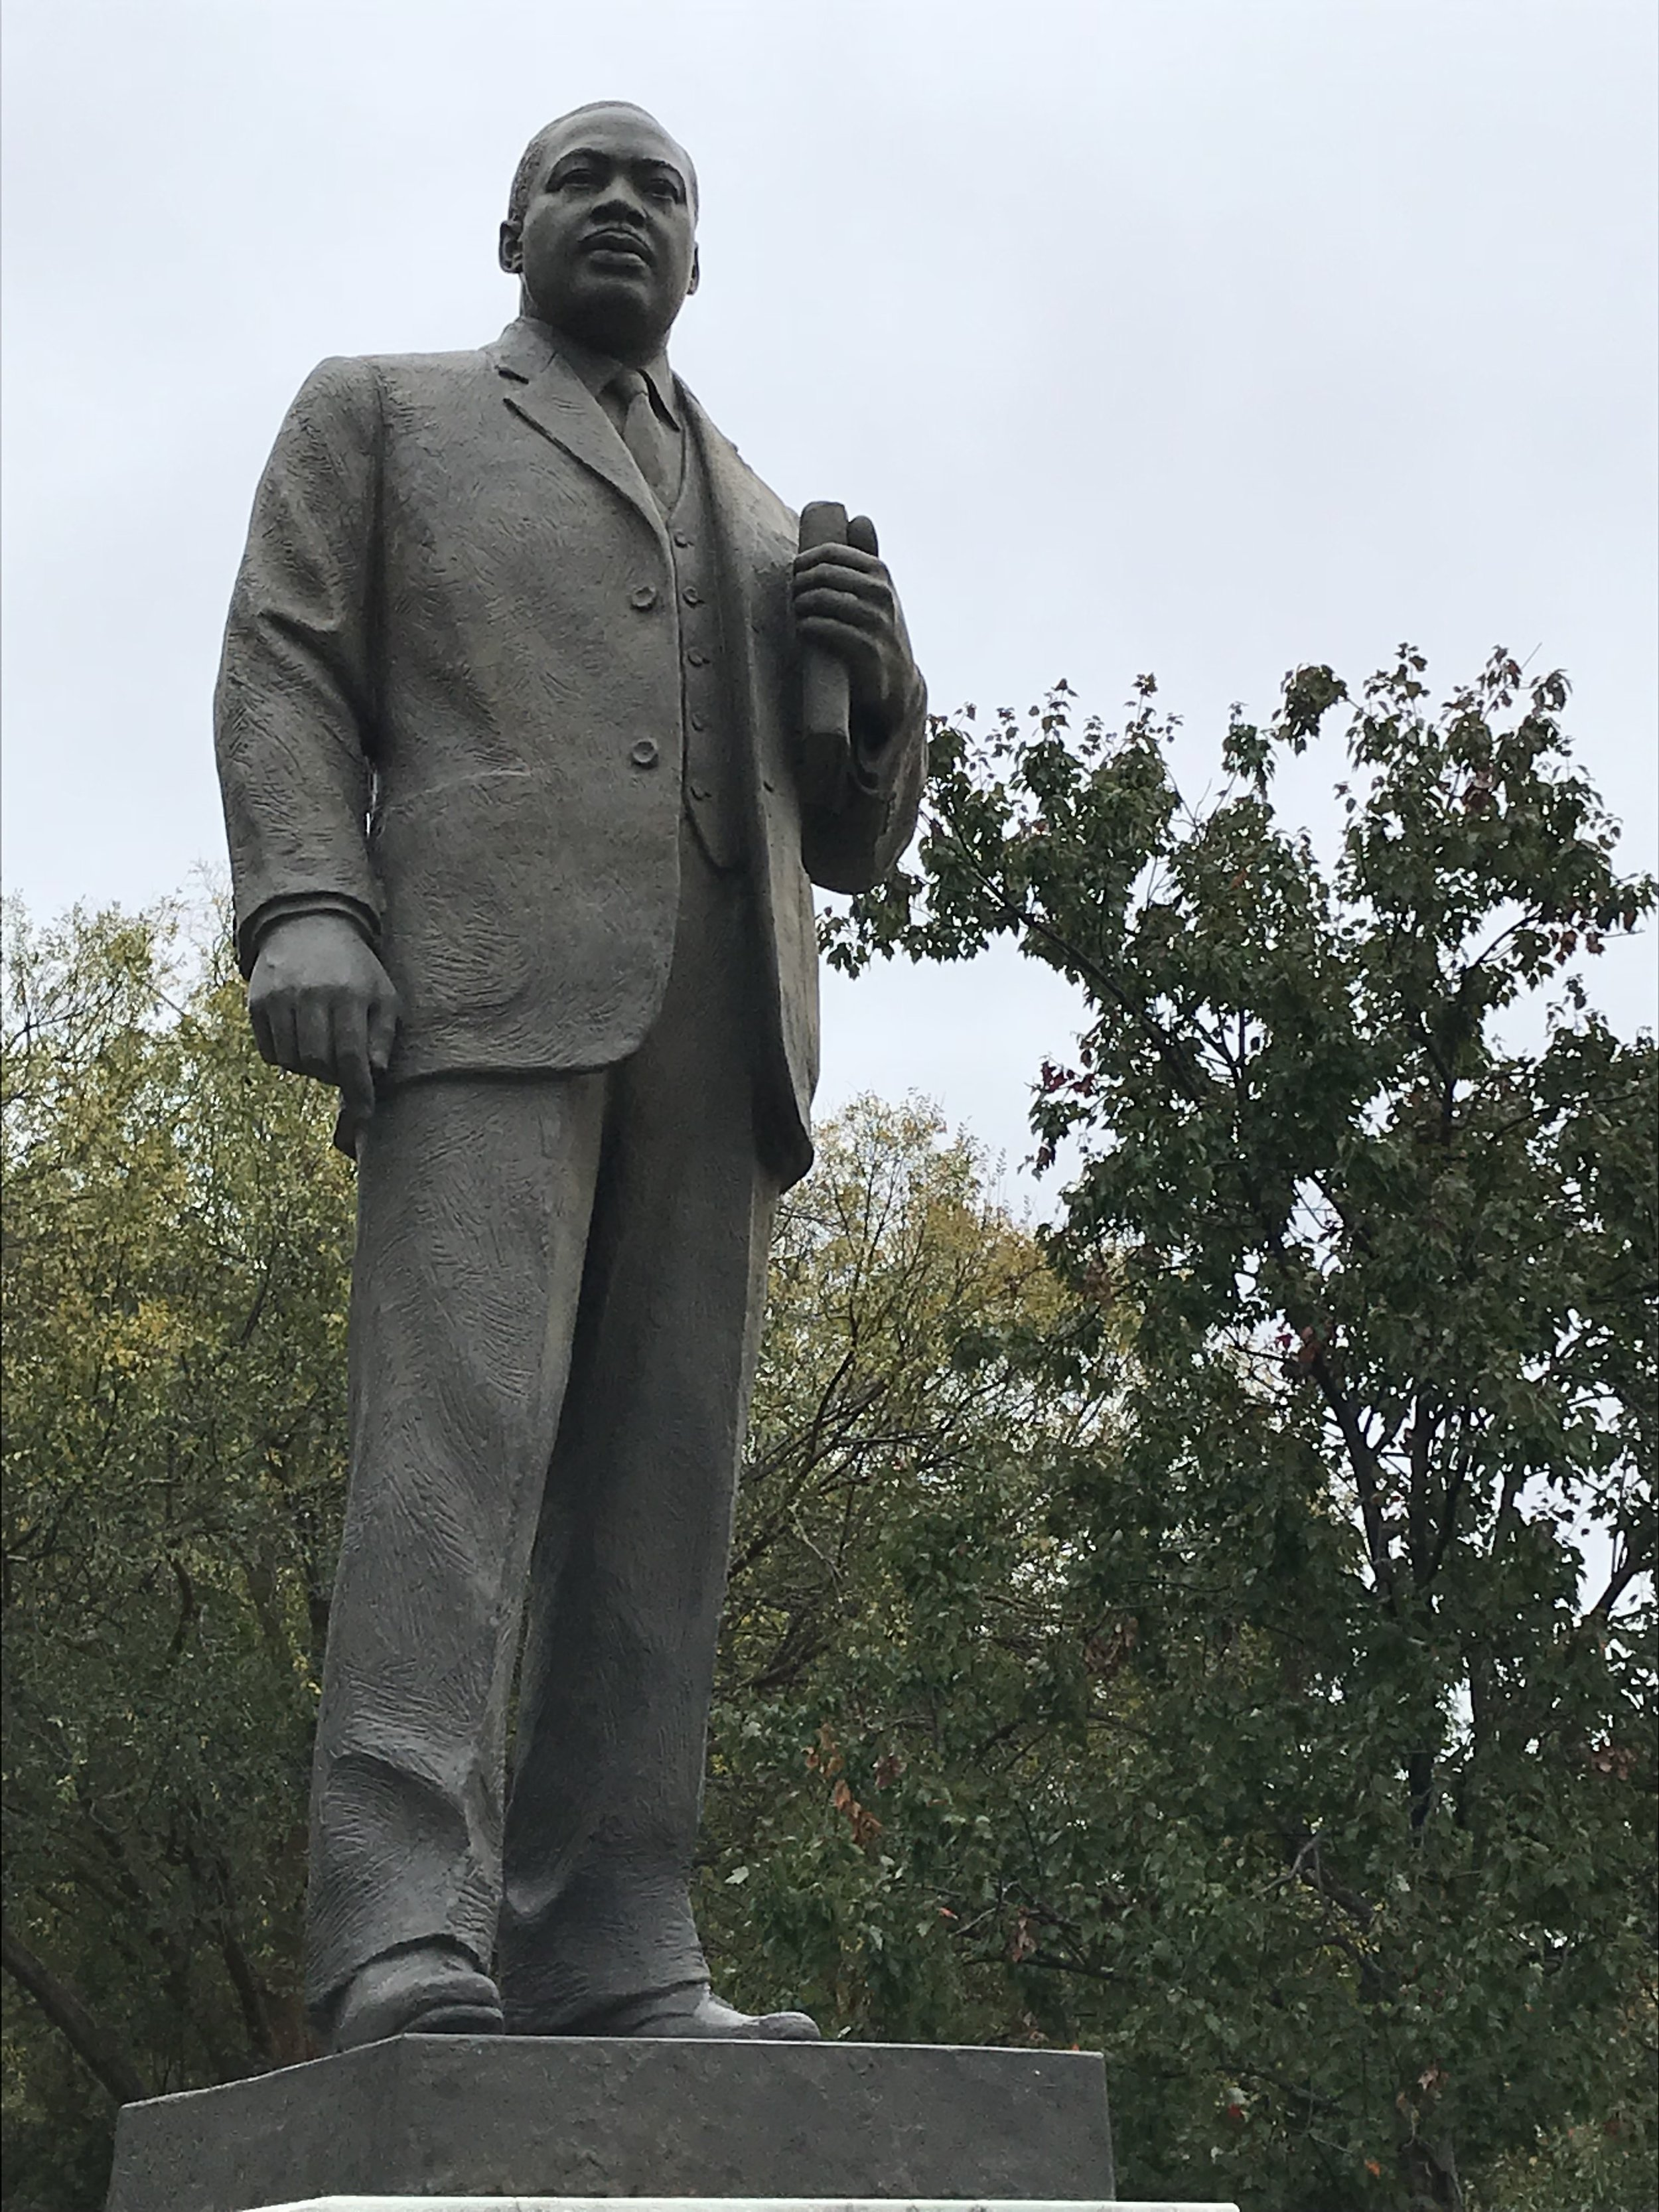 Monument to Martin Luther King, Jr. in Kelly Ingram Park.  Photo by author.